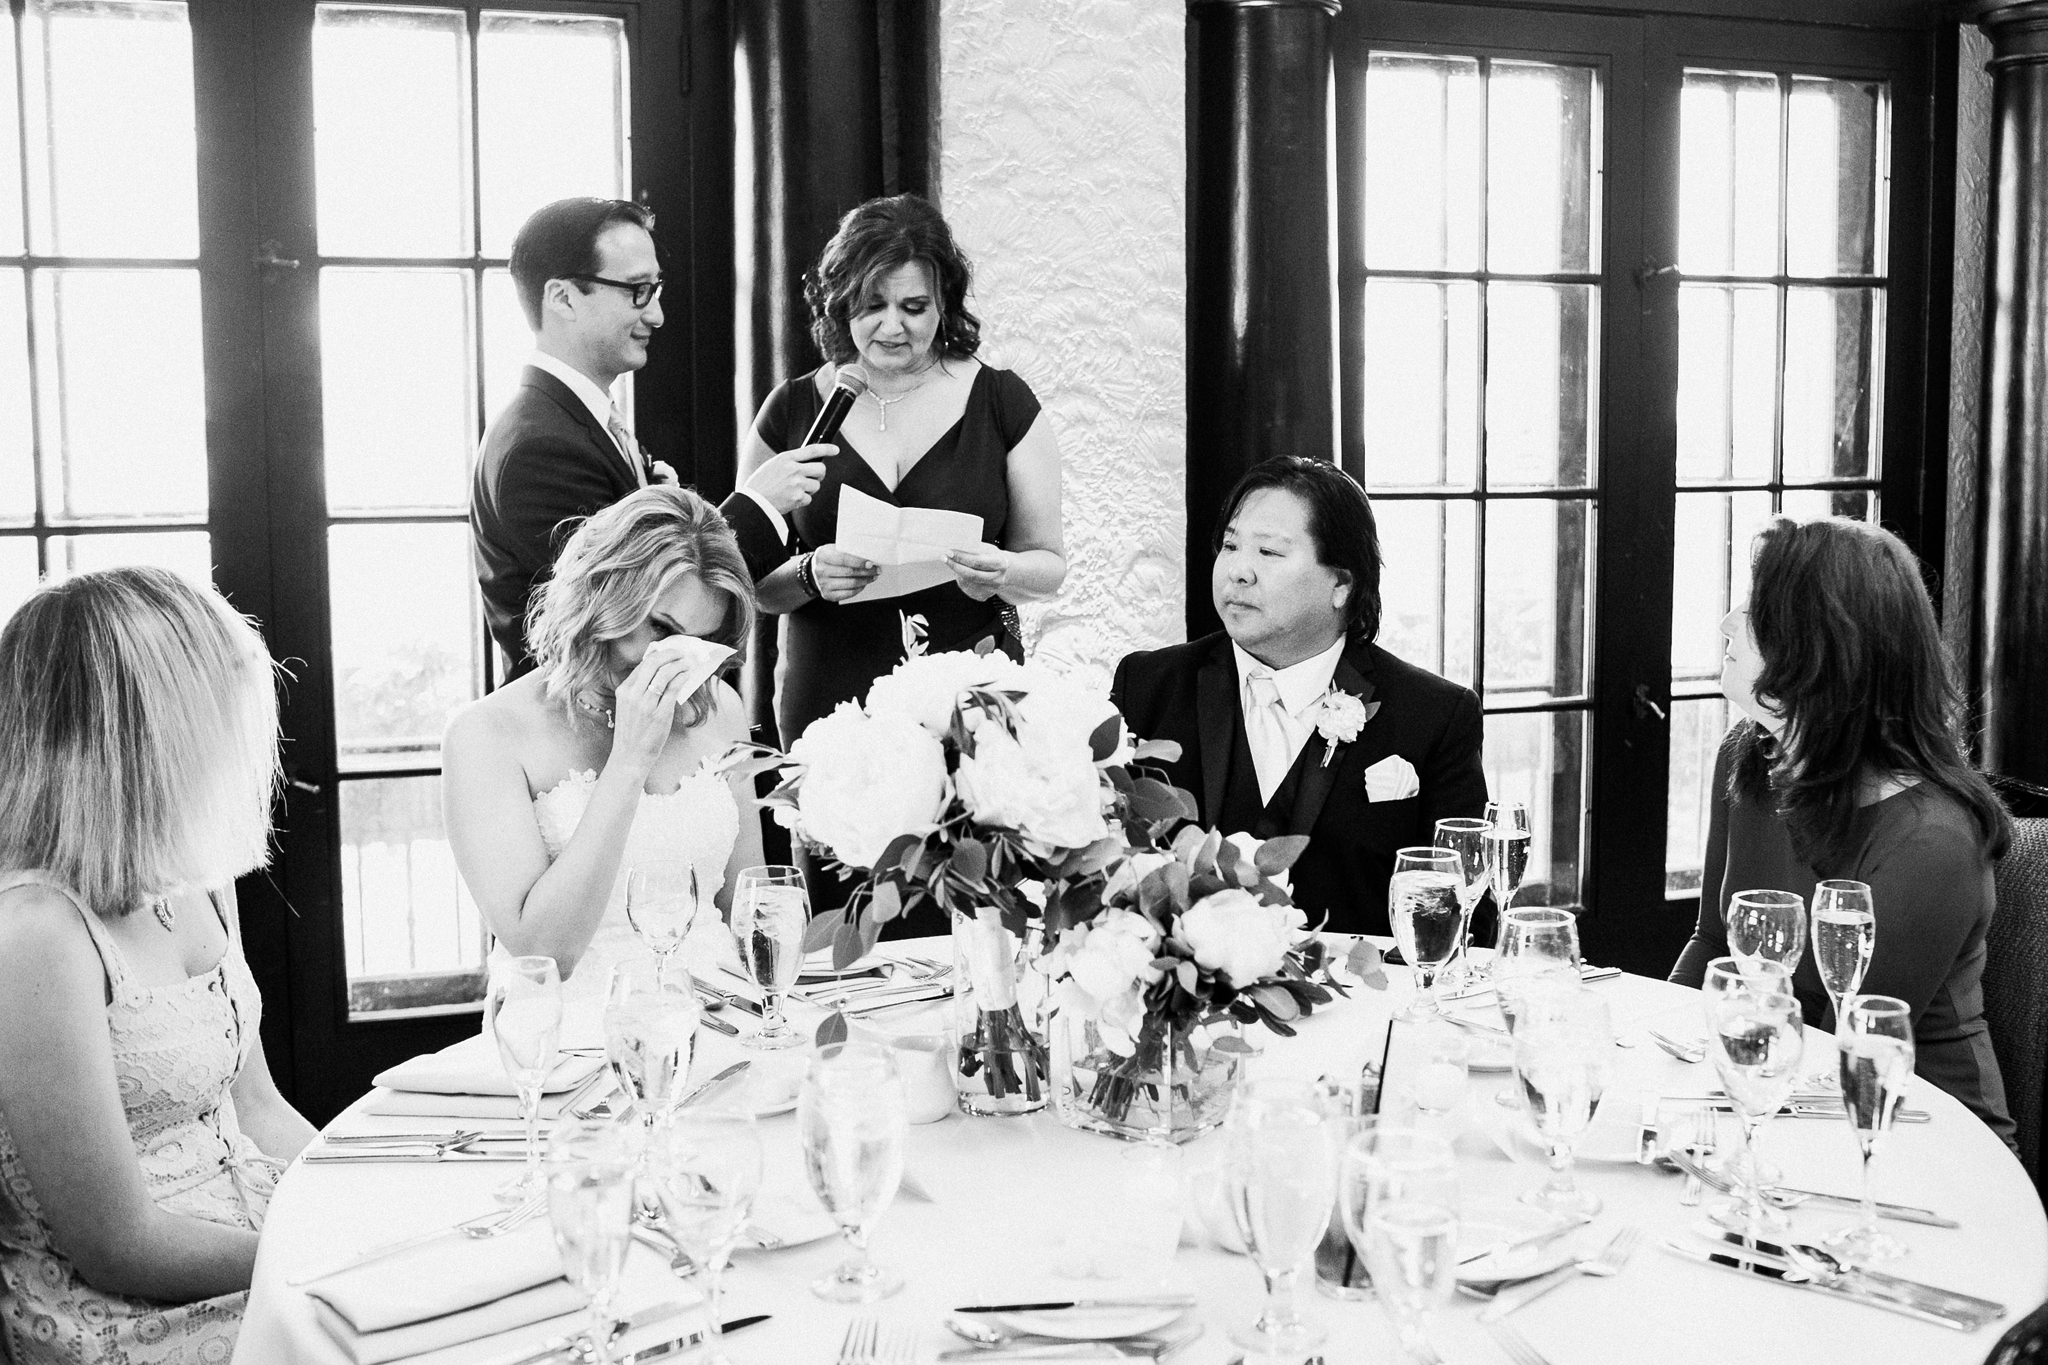 hotel_baker_st_charles_IL_wedding_photographer_0063.jpg